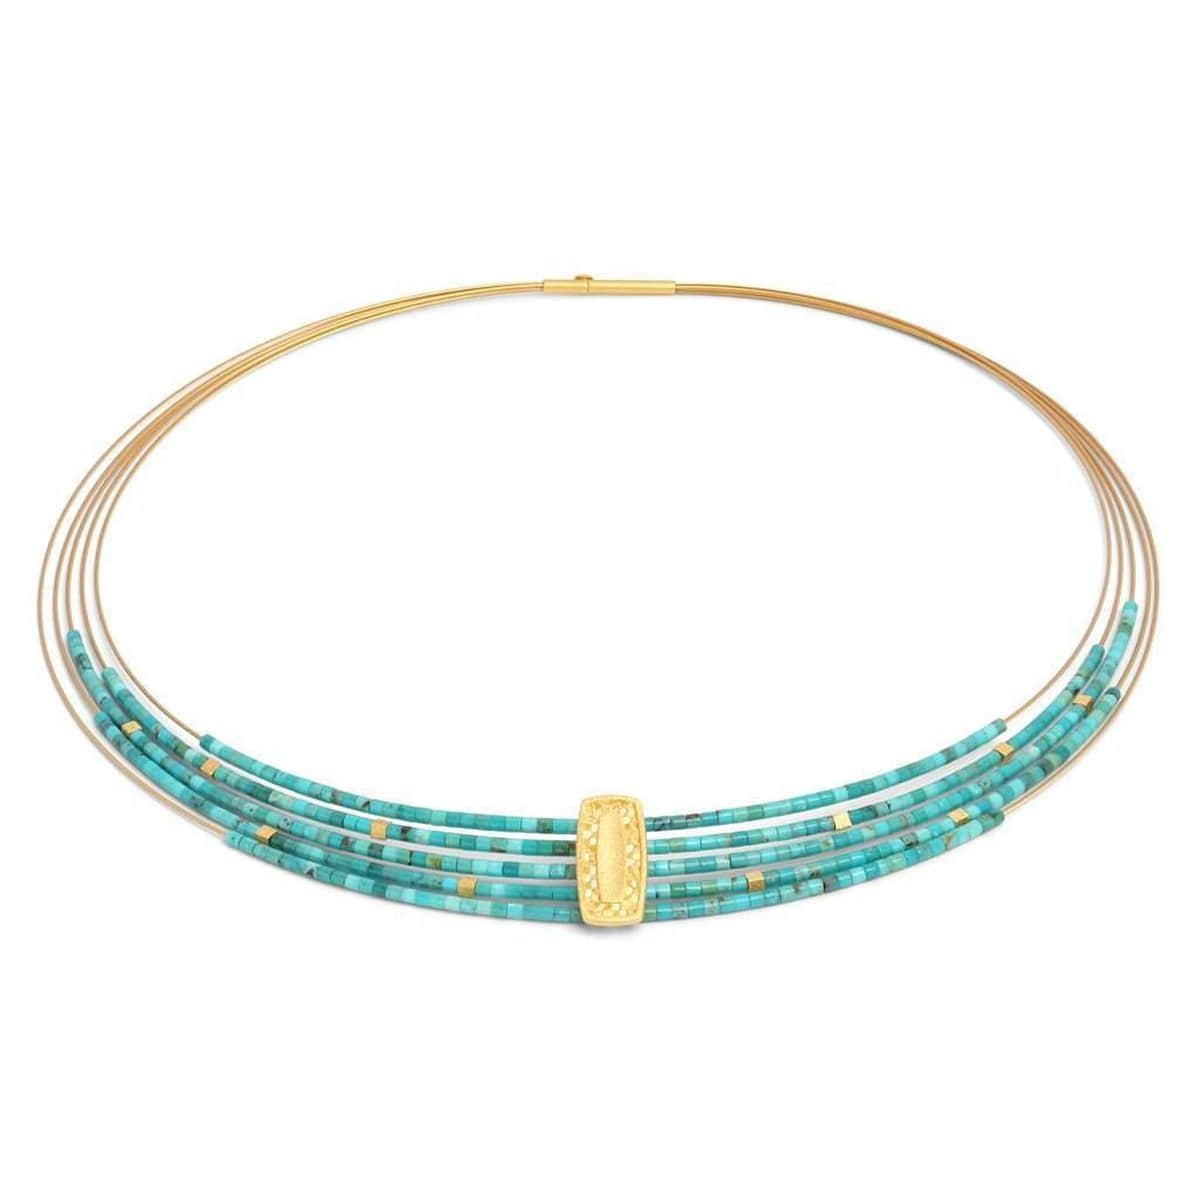 Movena Turquoise Necklace - 84922256-Bernd Wolf-Renee Taylor Gallery